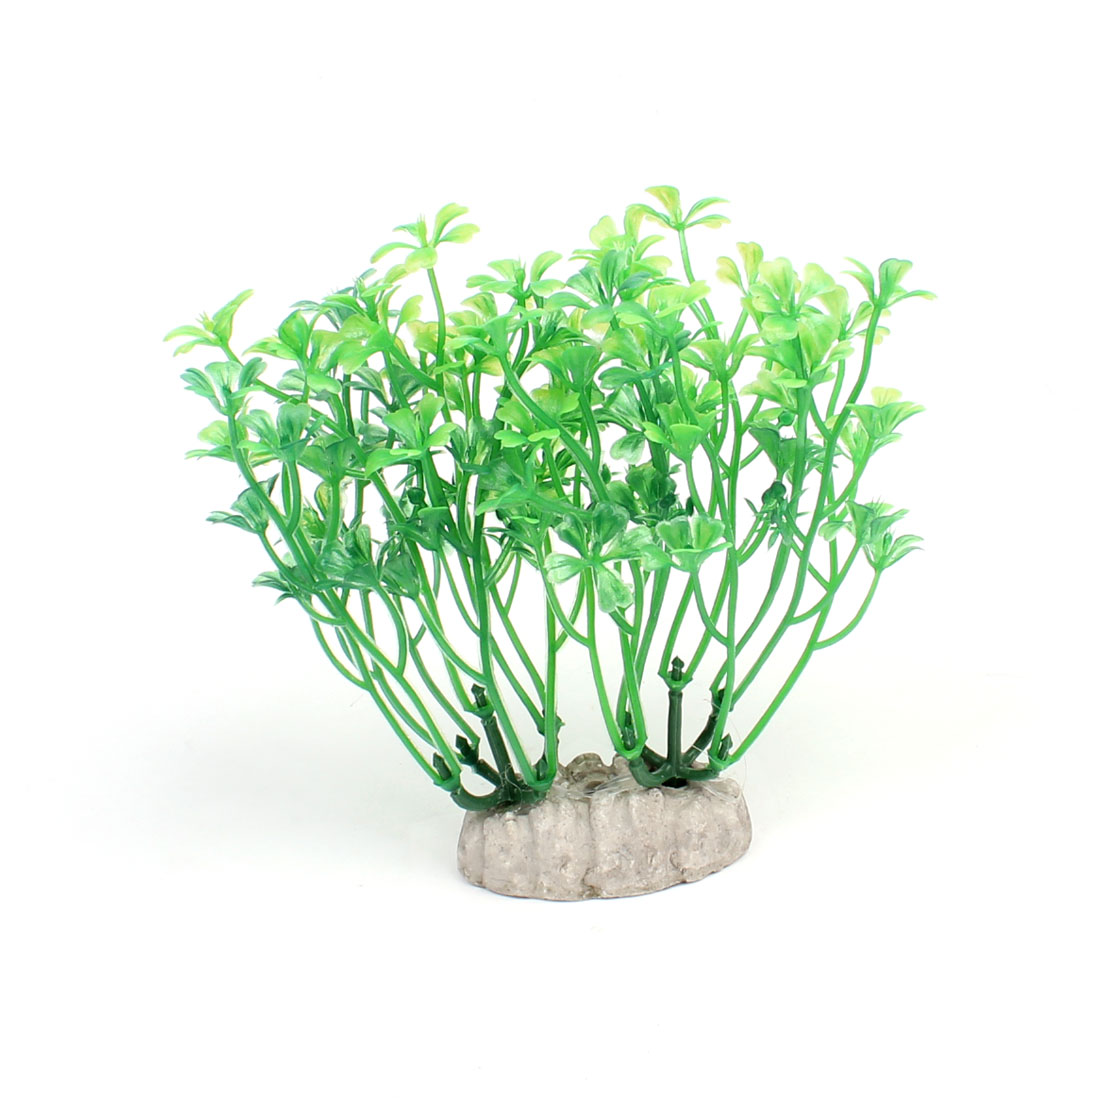 "5.1"" Height Green Underwater Aquatic Plastic Plant Grass for Fish Tank"